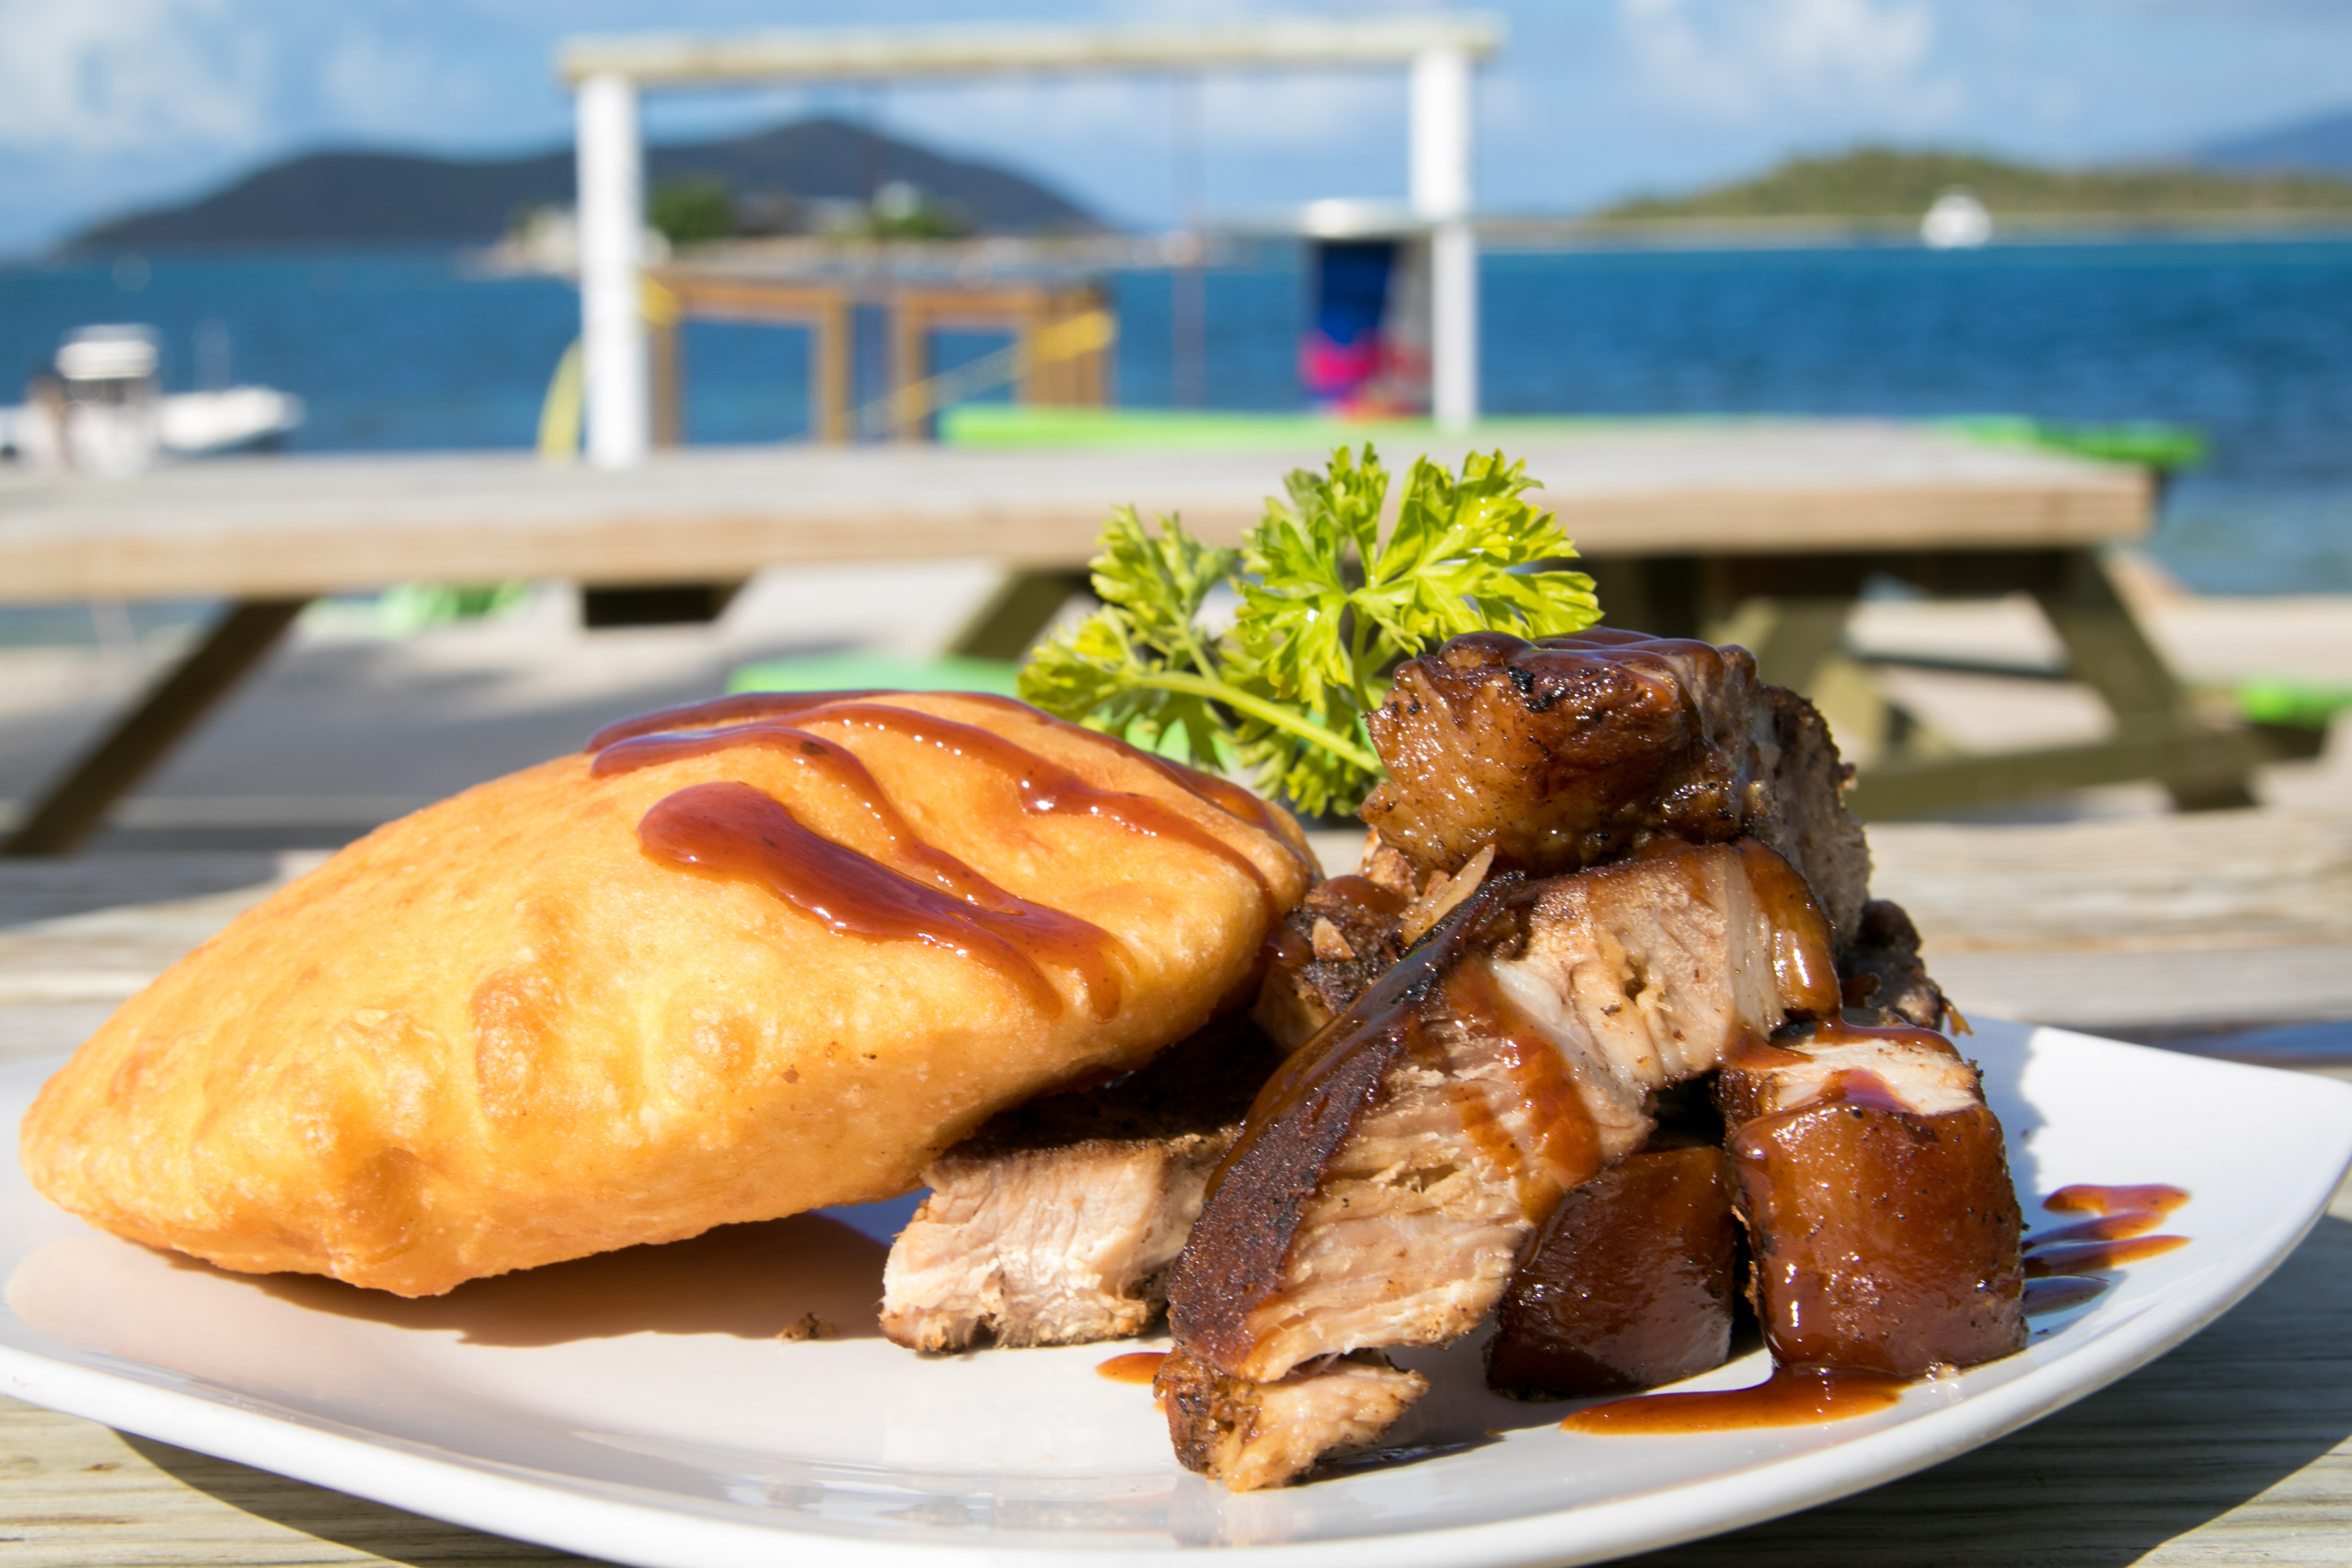 jerk pork, Johnny cake at trellis bay market